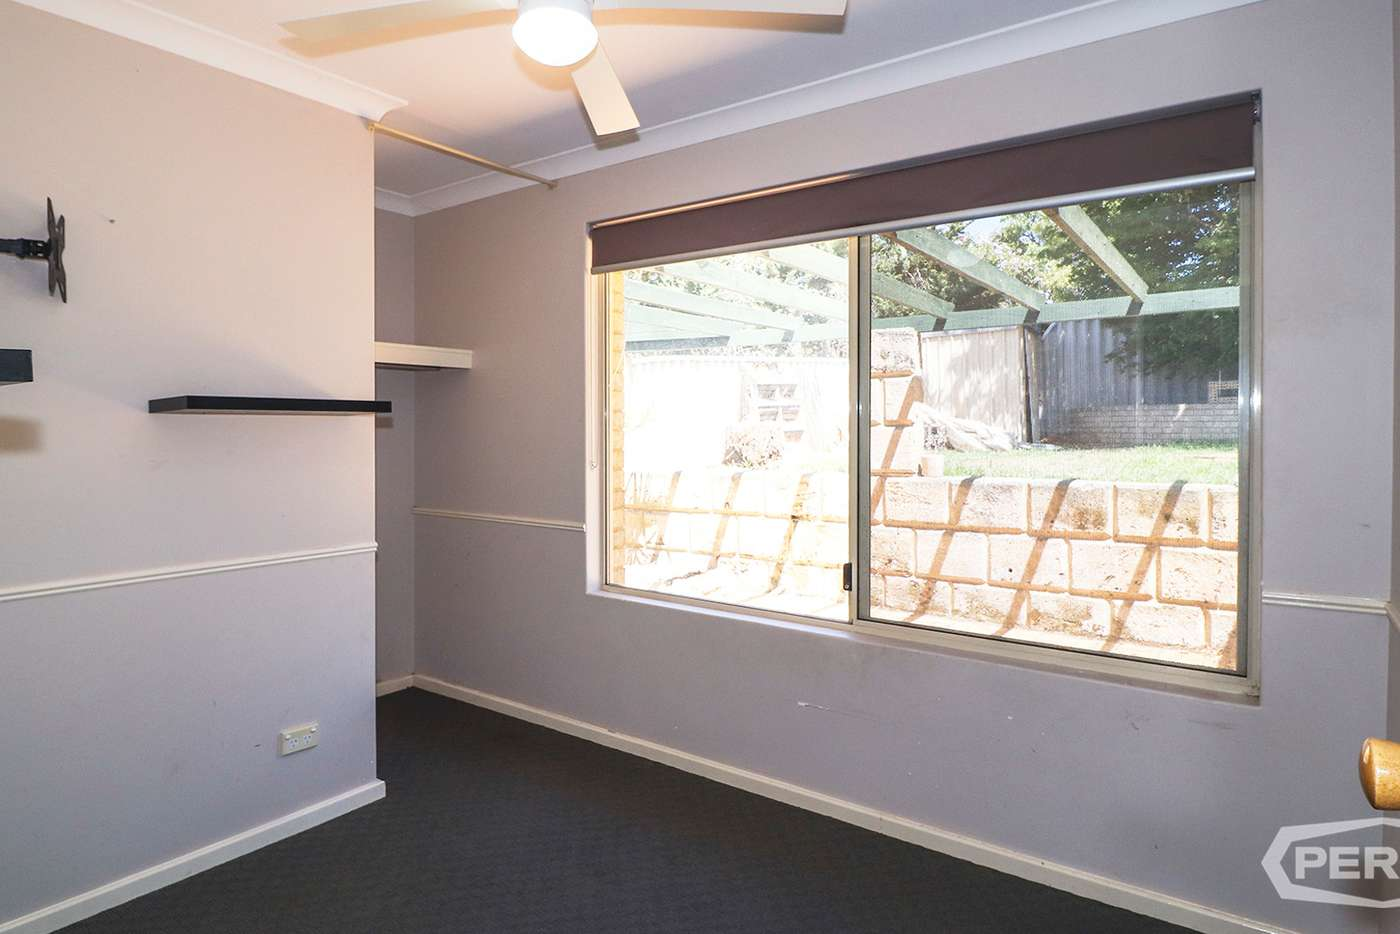 Seventh view of Homely house listing, 15 Malabor Mews, Halls Head WA 6210